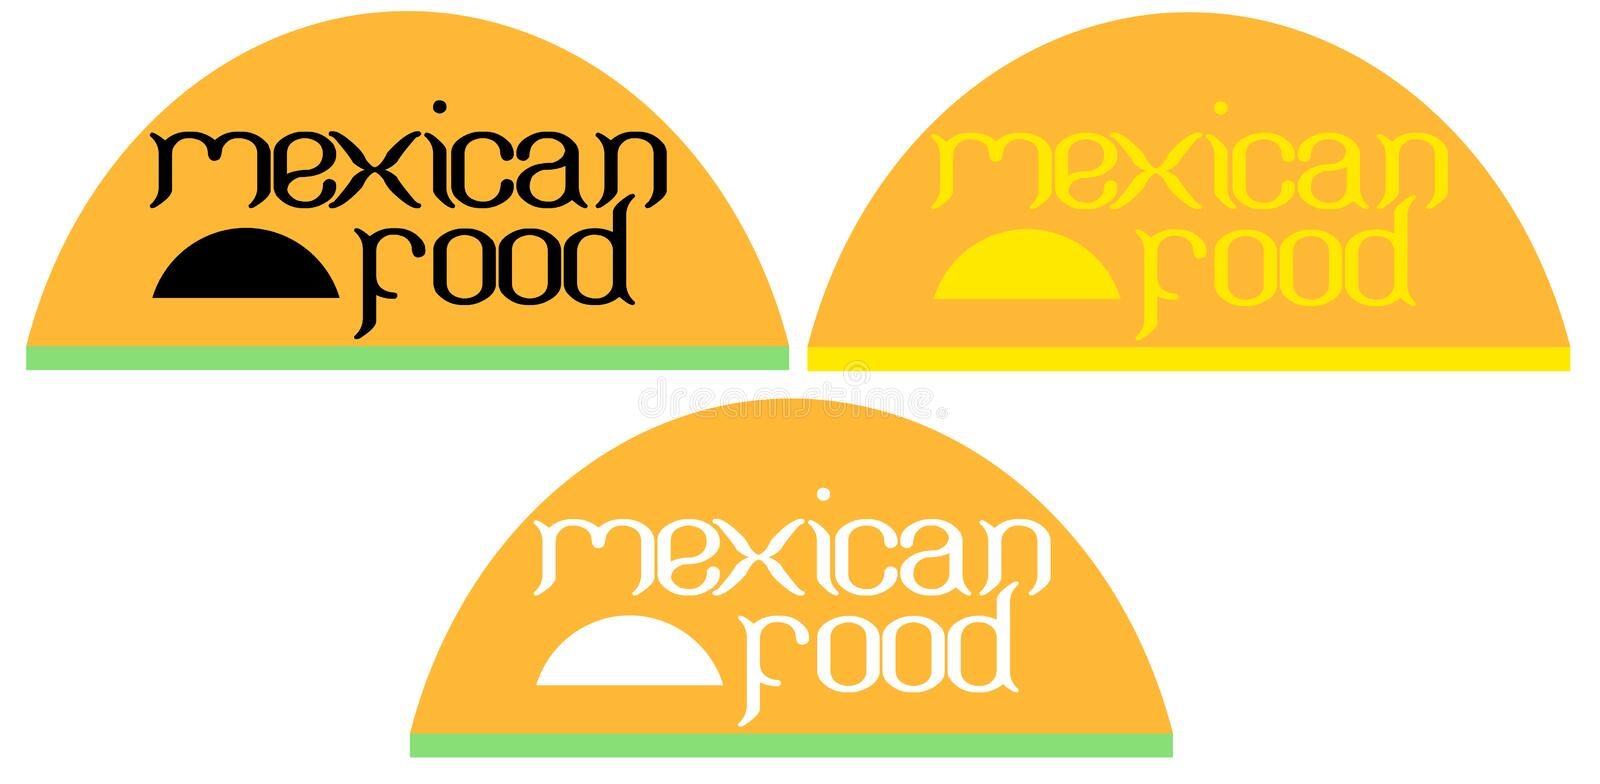 Typography background on tacos Mexican food is a creative logo stock illustration